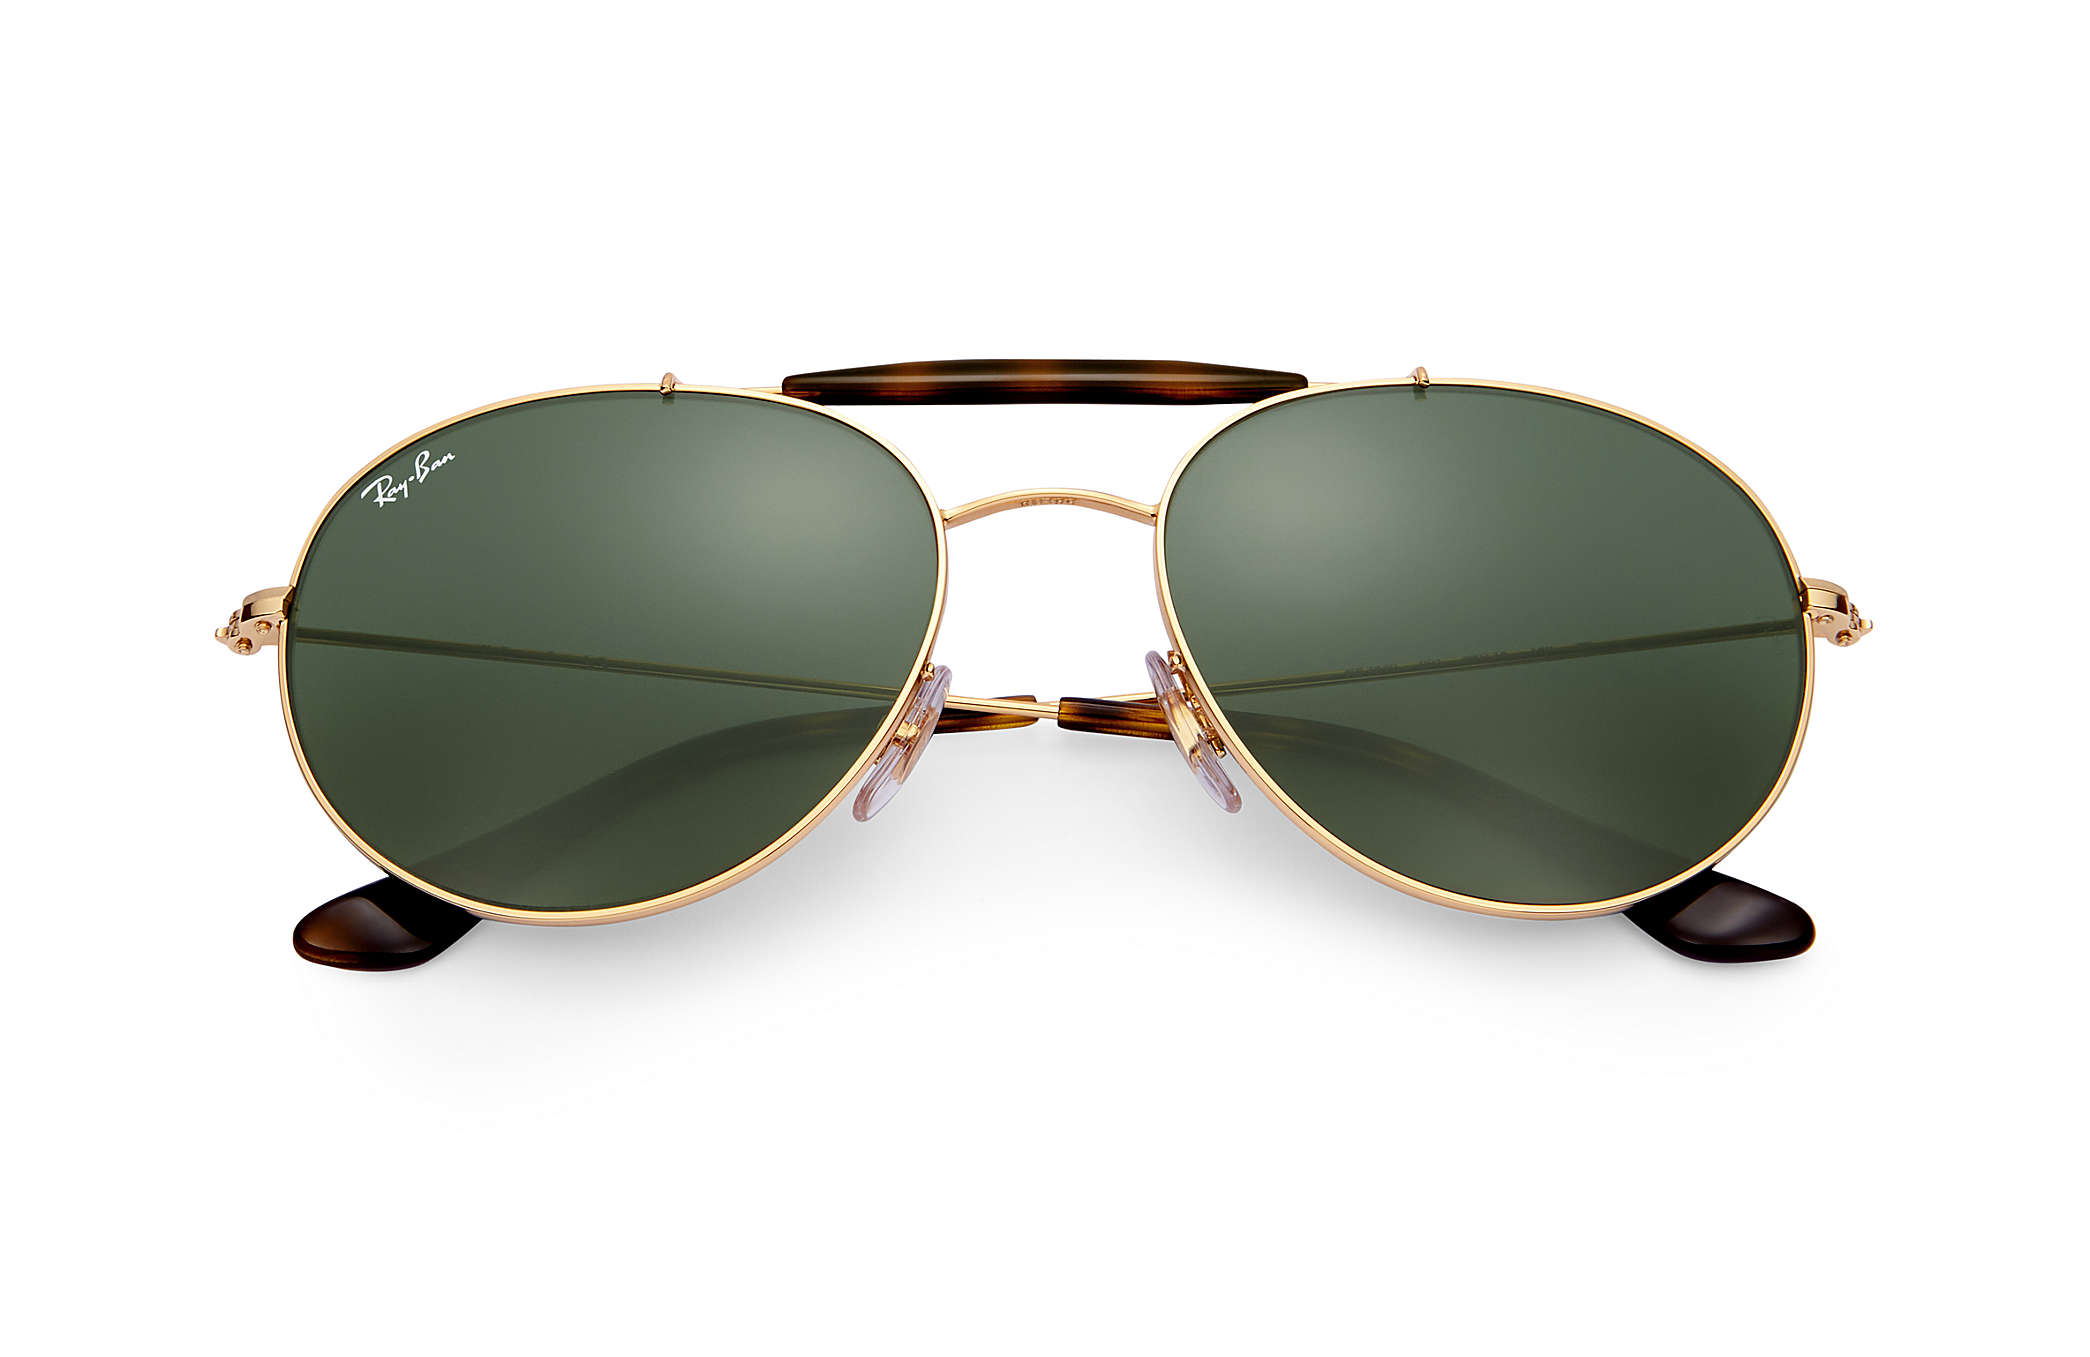 dbfbe4e2cfd70 Ray-Ban RB3540 Gold - Metal - Green Lenses - 0RB354000156